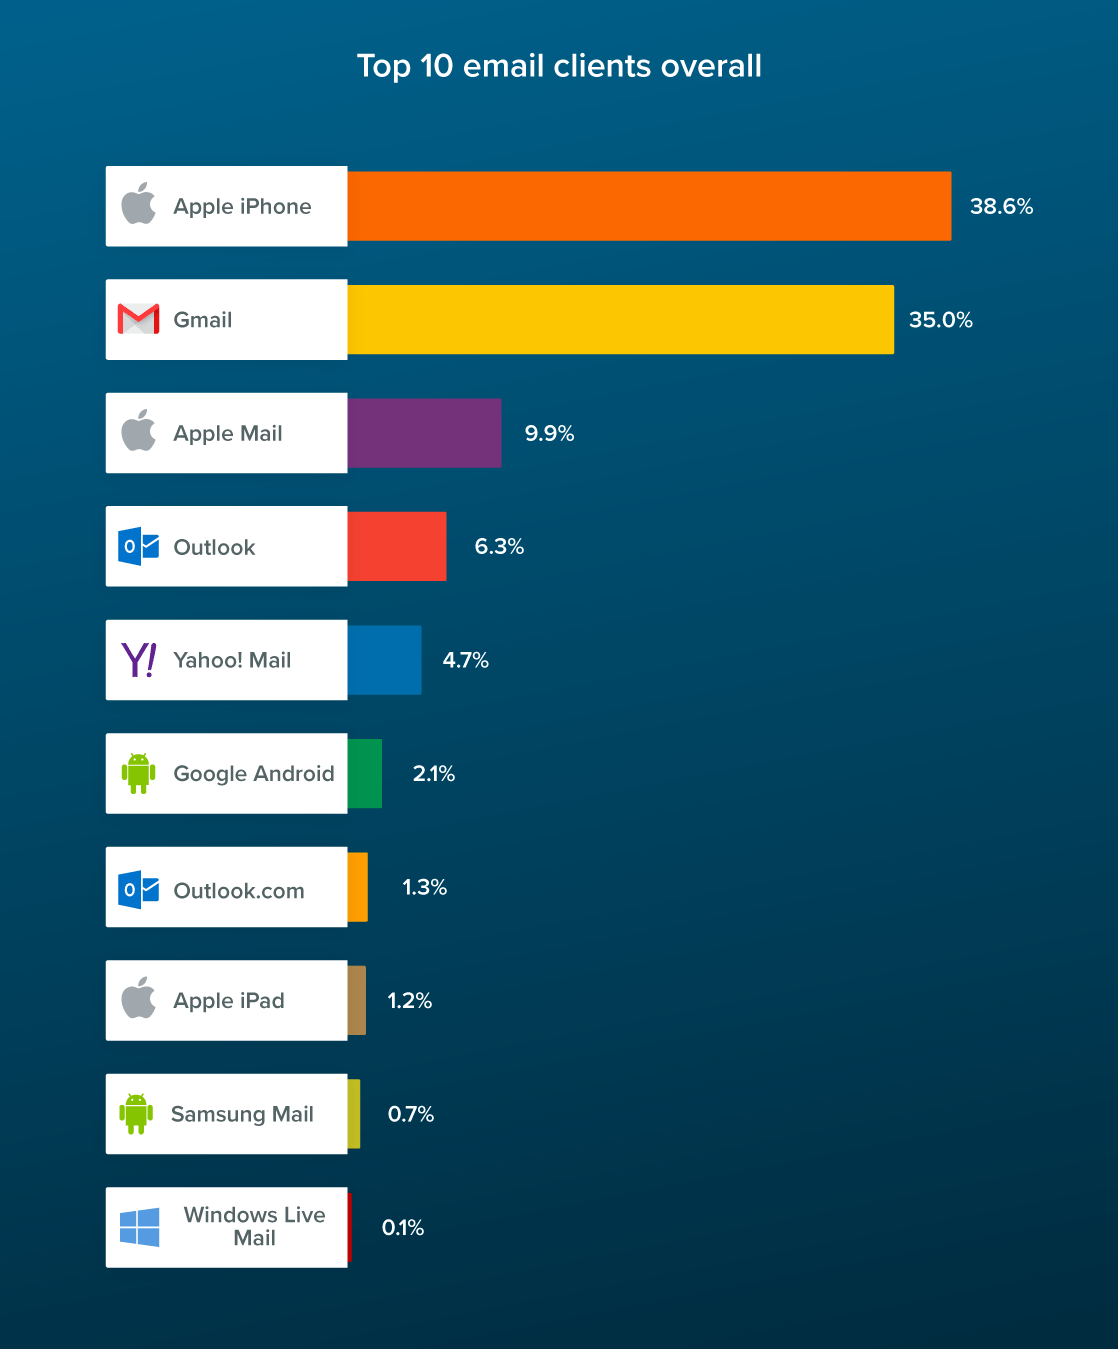 July 2021 Top 10 email clients overall